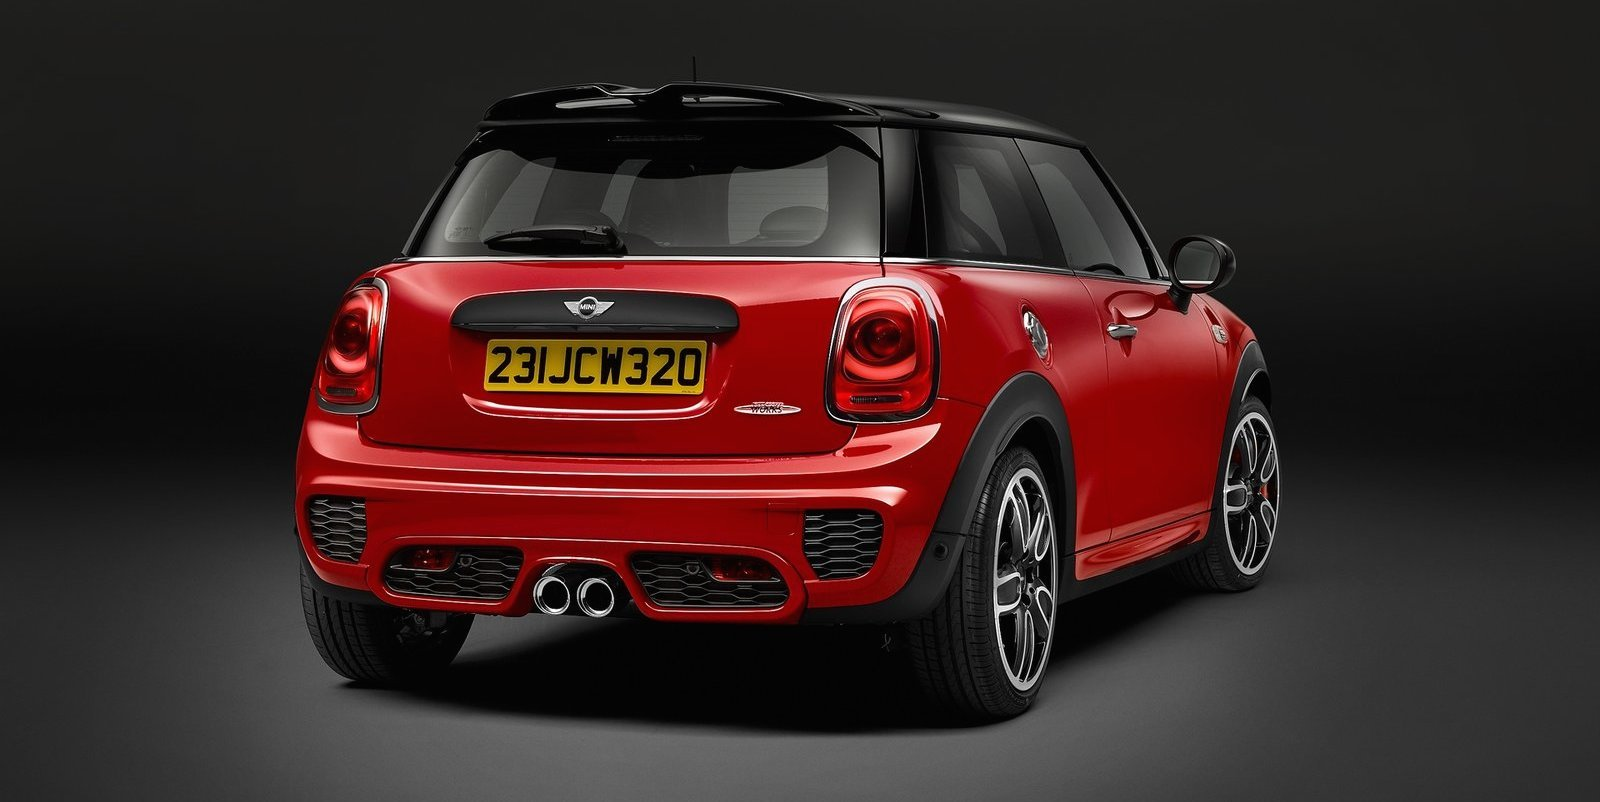 2015 mini john cooper works pricing and specifications photos caradvice. Black Bedroom Furniture Sets. Home Design Ideas